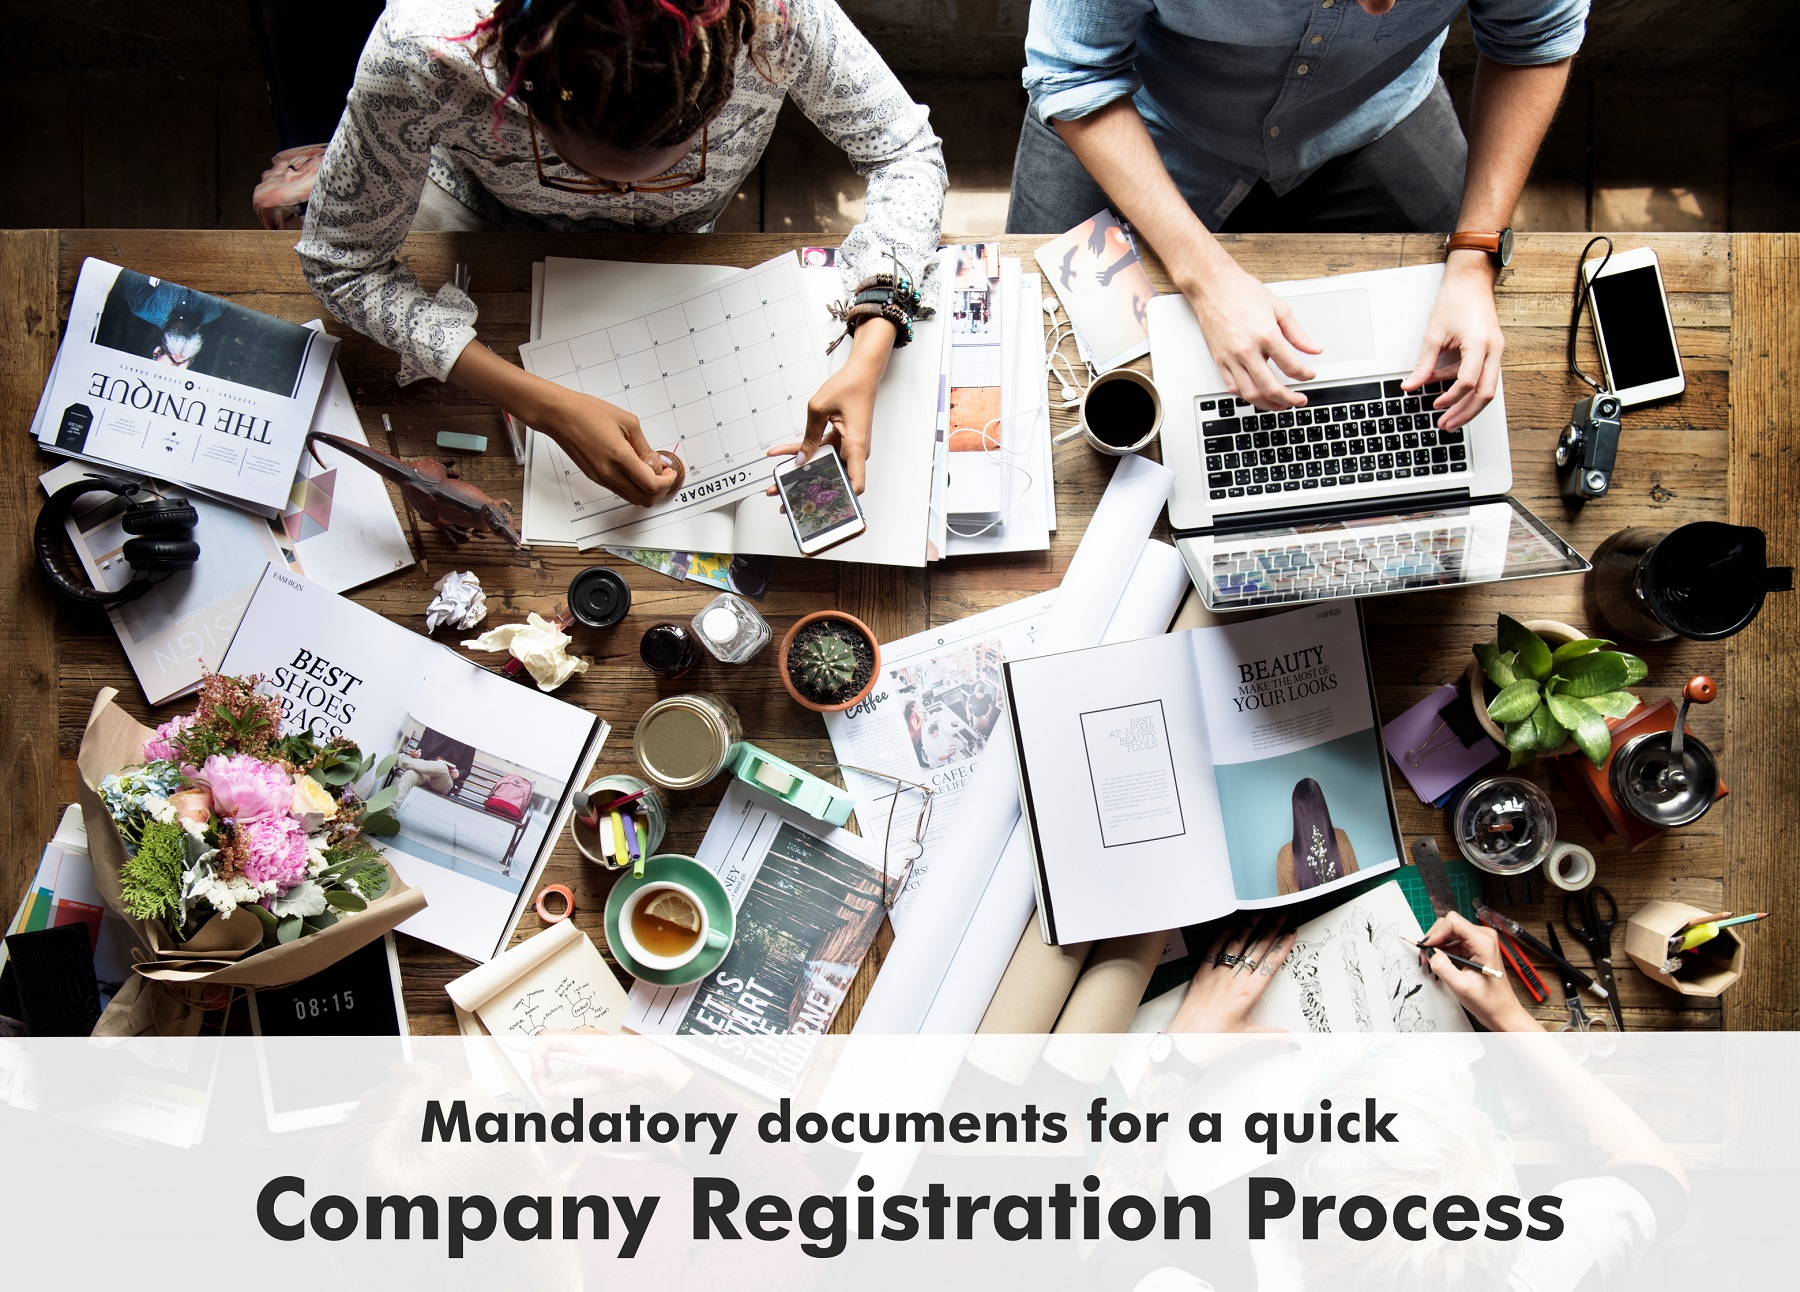 DOCUMENTS REQUIRED FOR PRIVATE COMPANY REGISTRATION